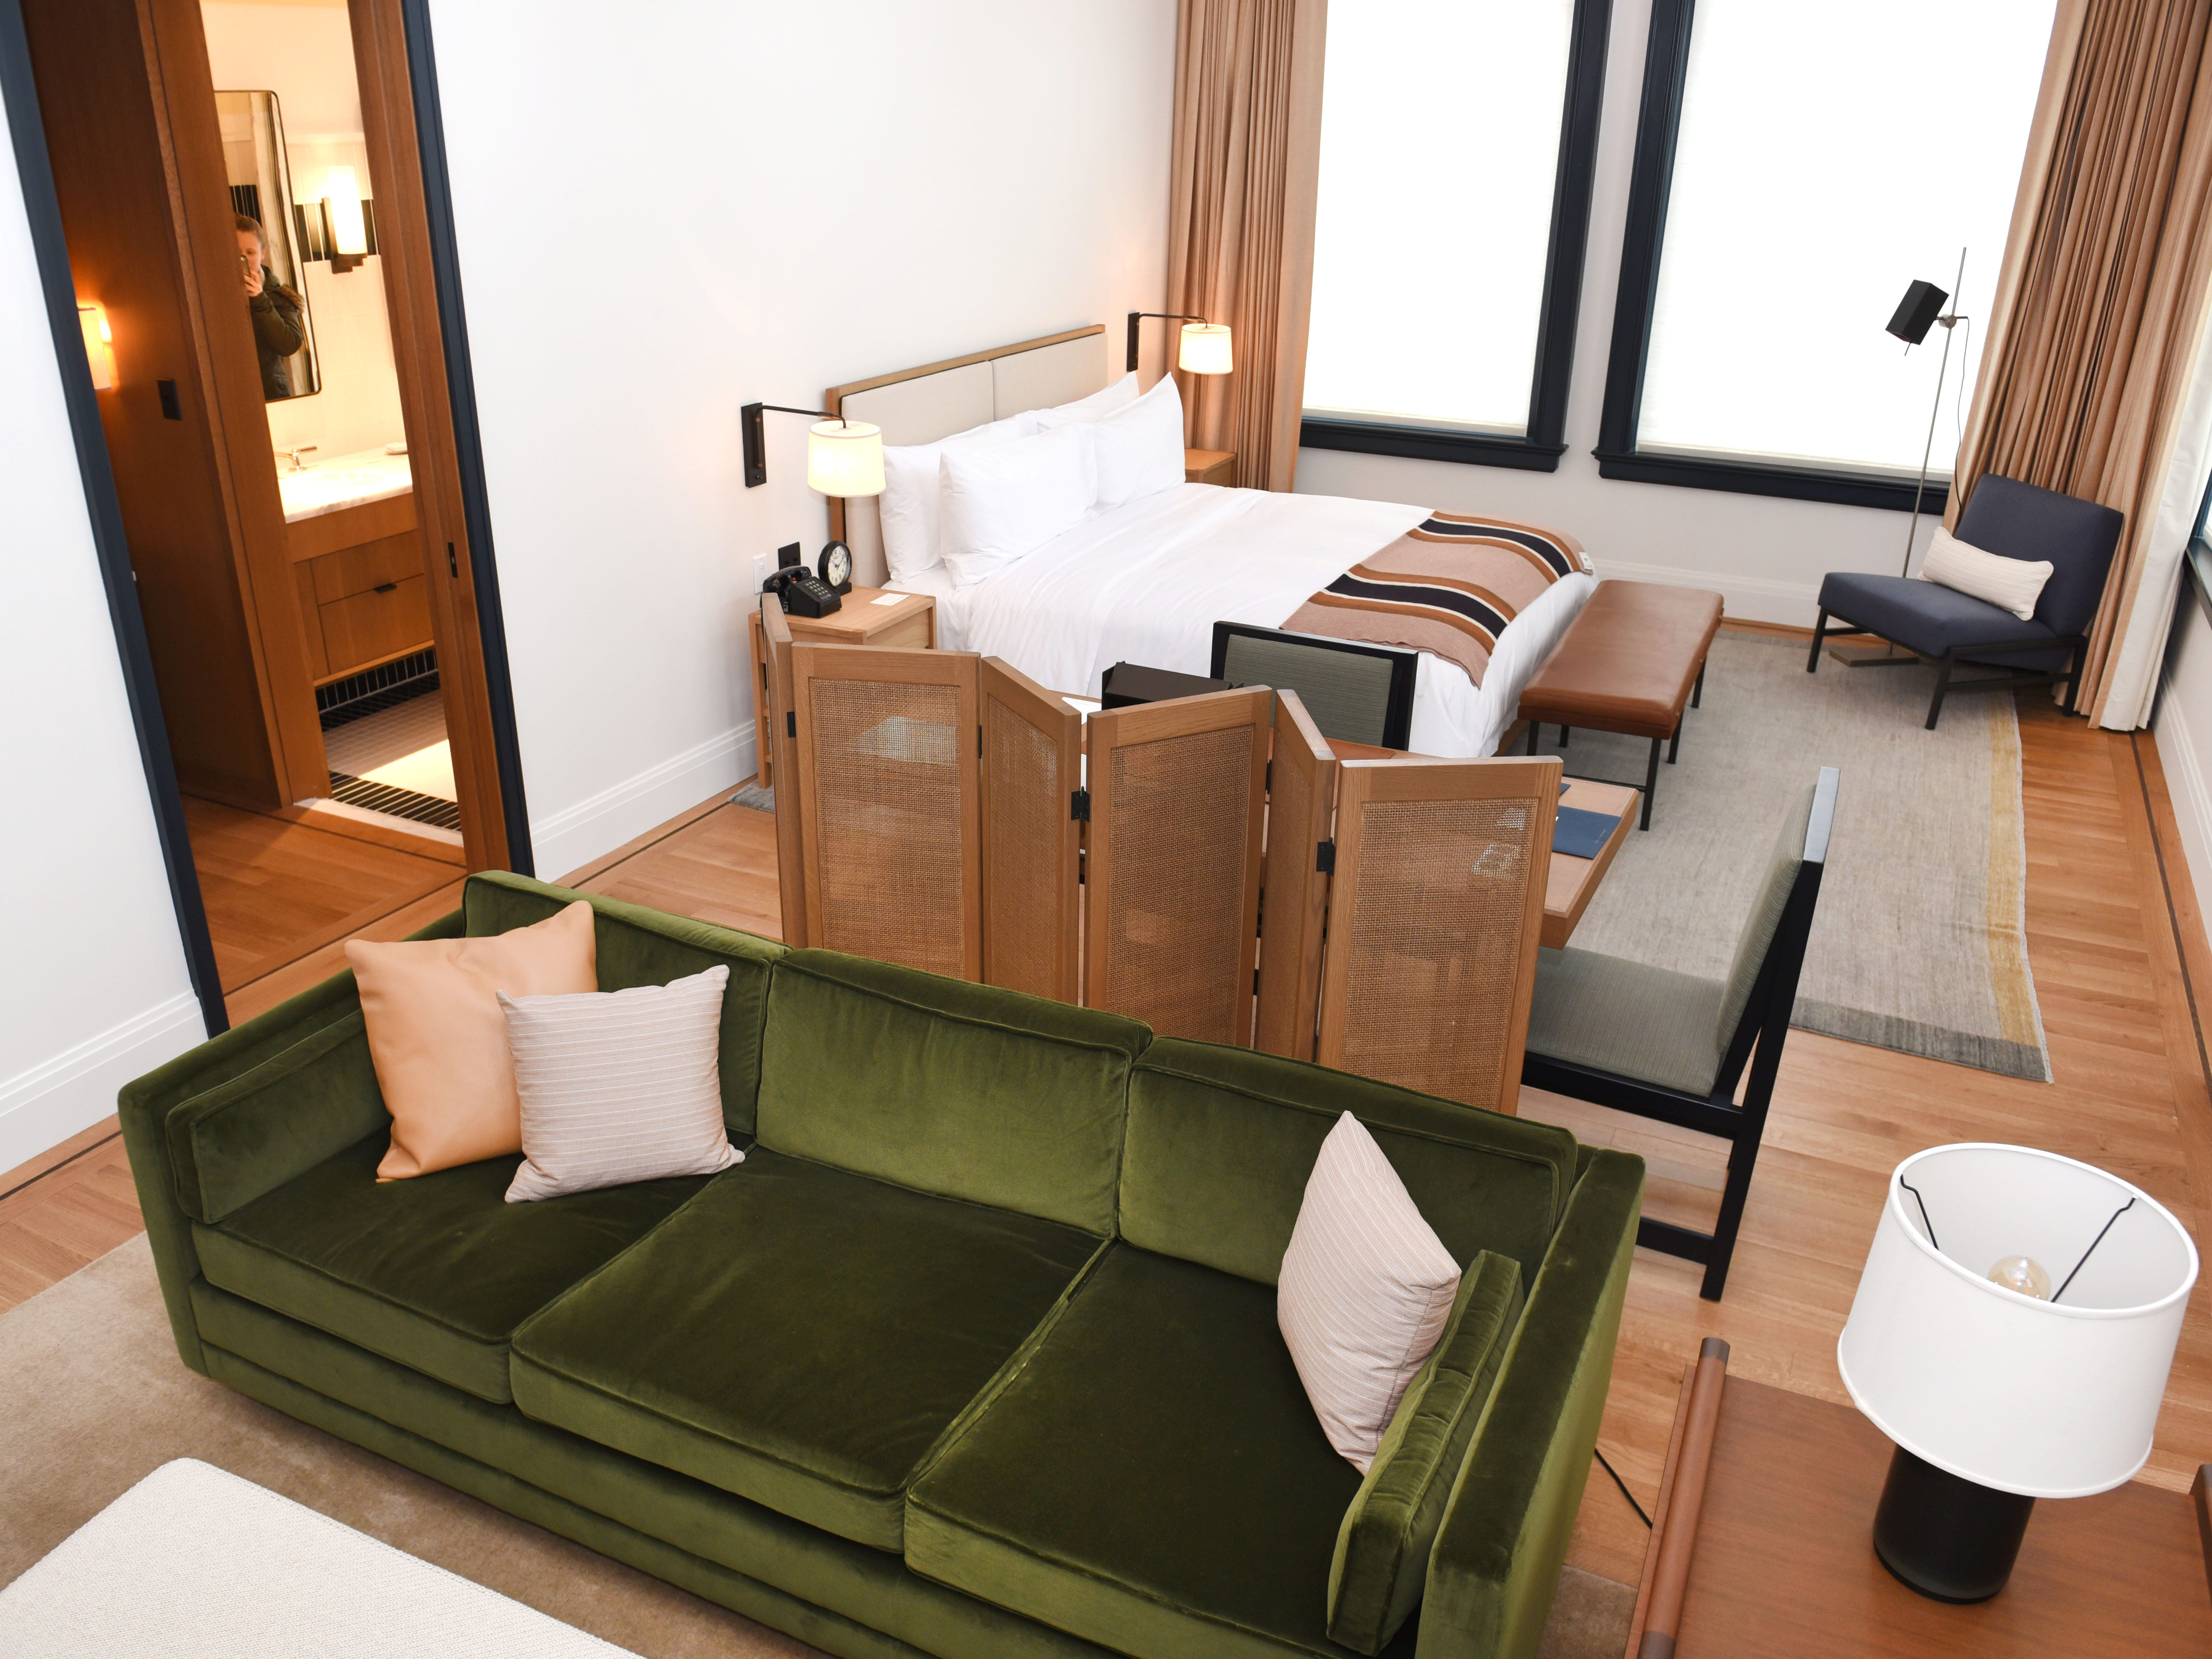 A guest suite at the Shinola Hotel. Rates start at $195 per night.